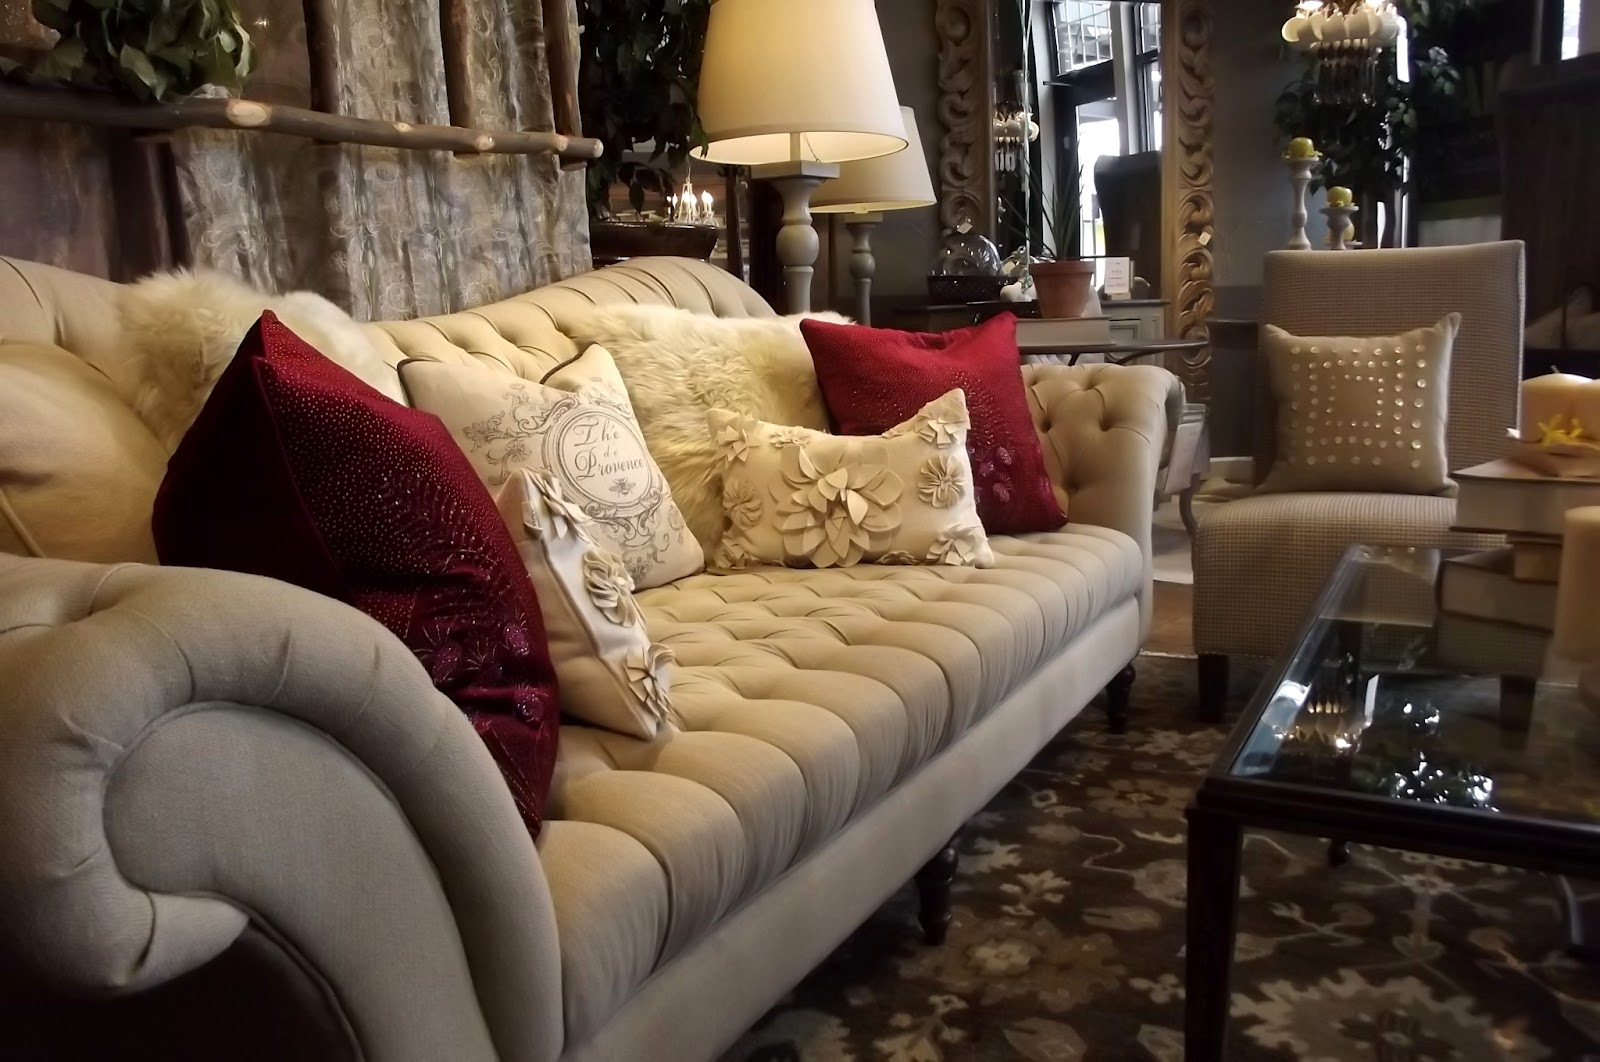 Whatu0027s Inspiring Me. The Club Sofa From Arhaus ...